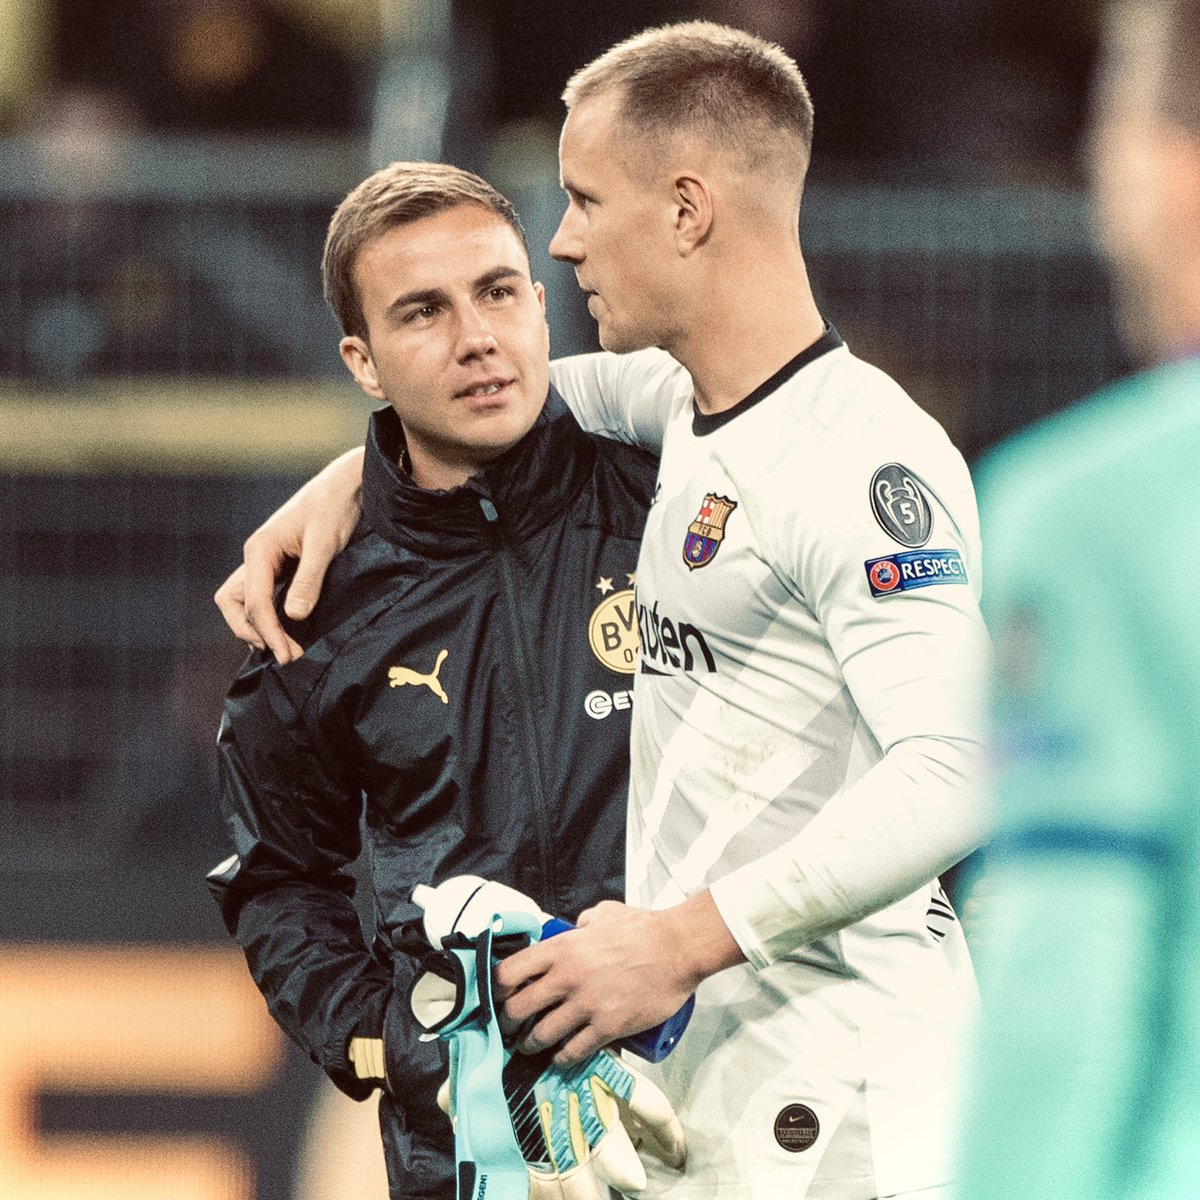 Happy birthday @MarioGoetze 😃👏🏻👏🏻 We shared many great moments and there are many to come... I wish you lots of health and happiness! 👊🏻👊🏻 https://t.co/POyD51Pczq